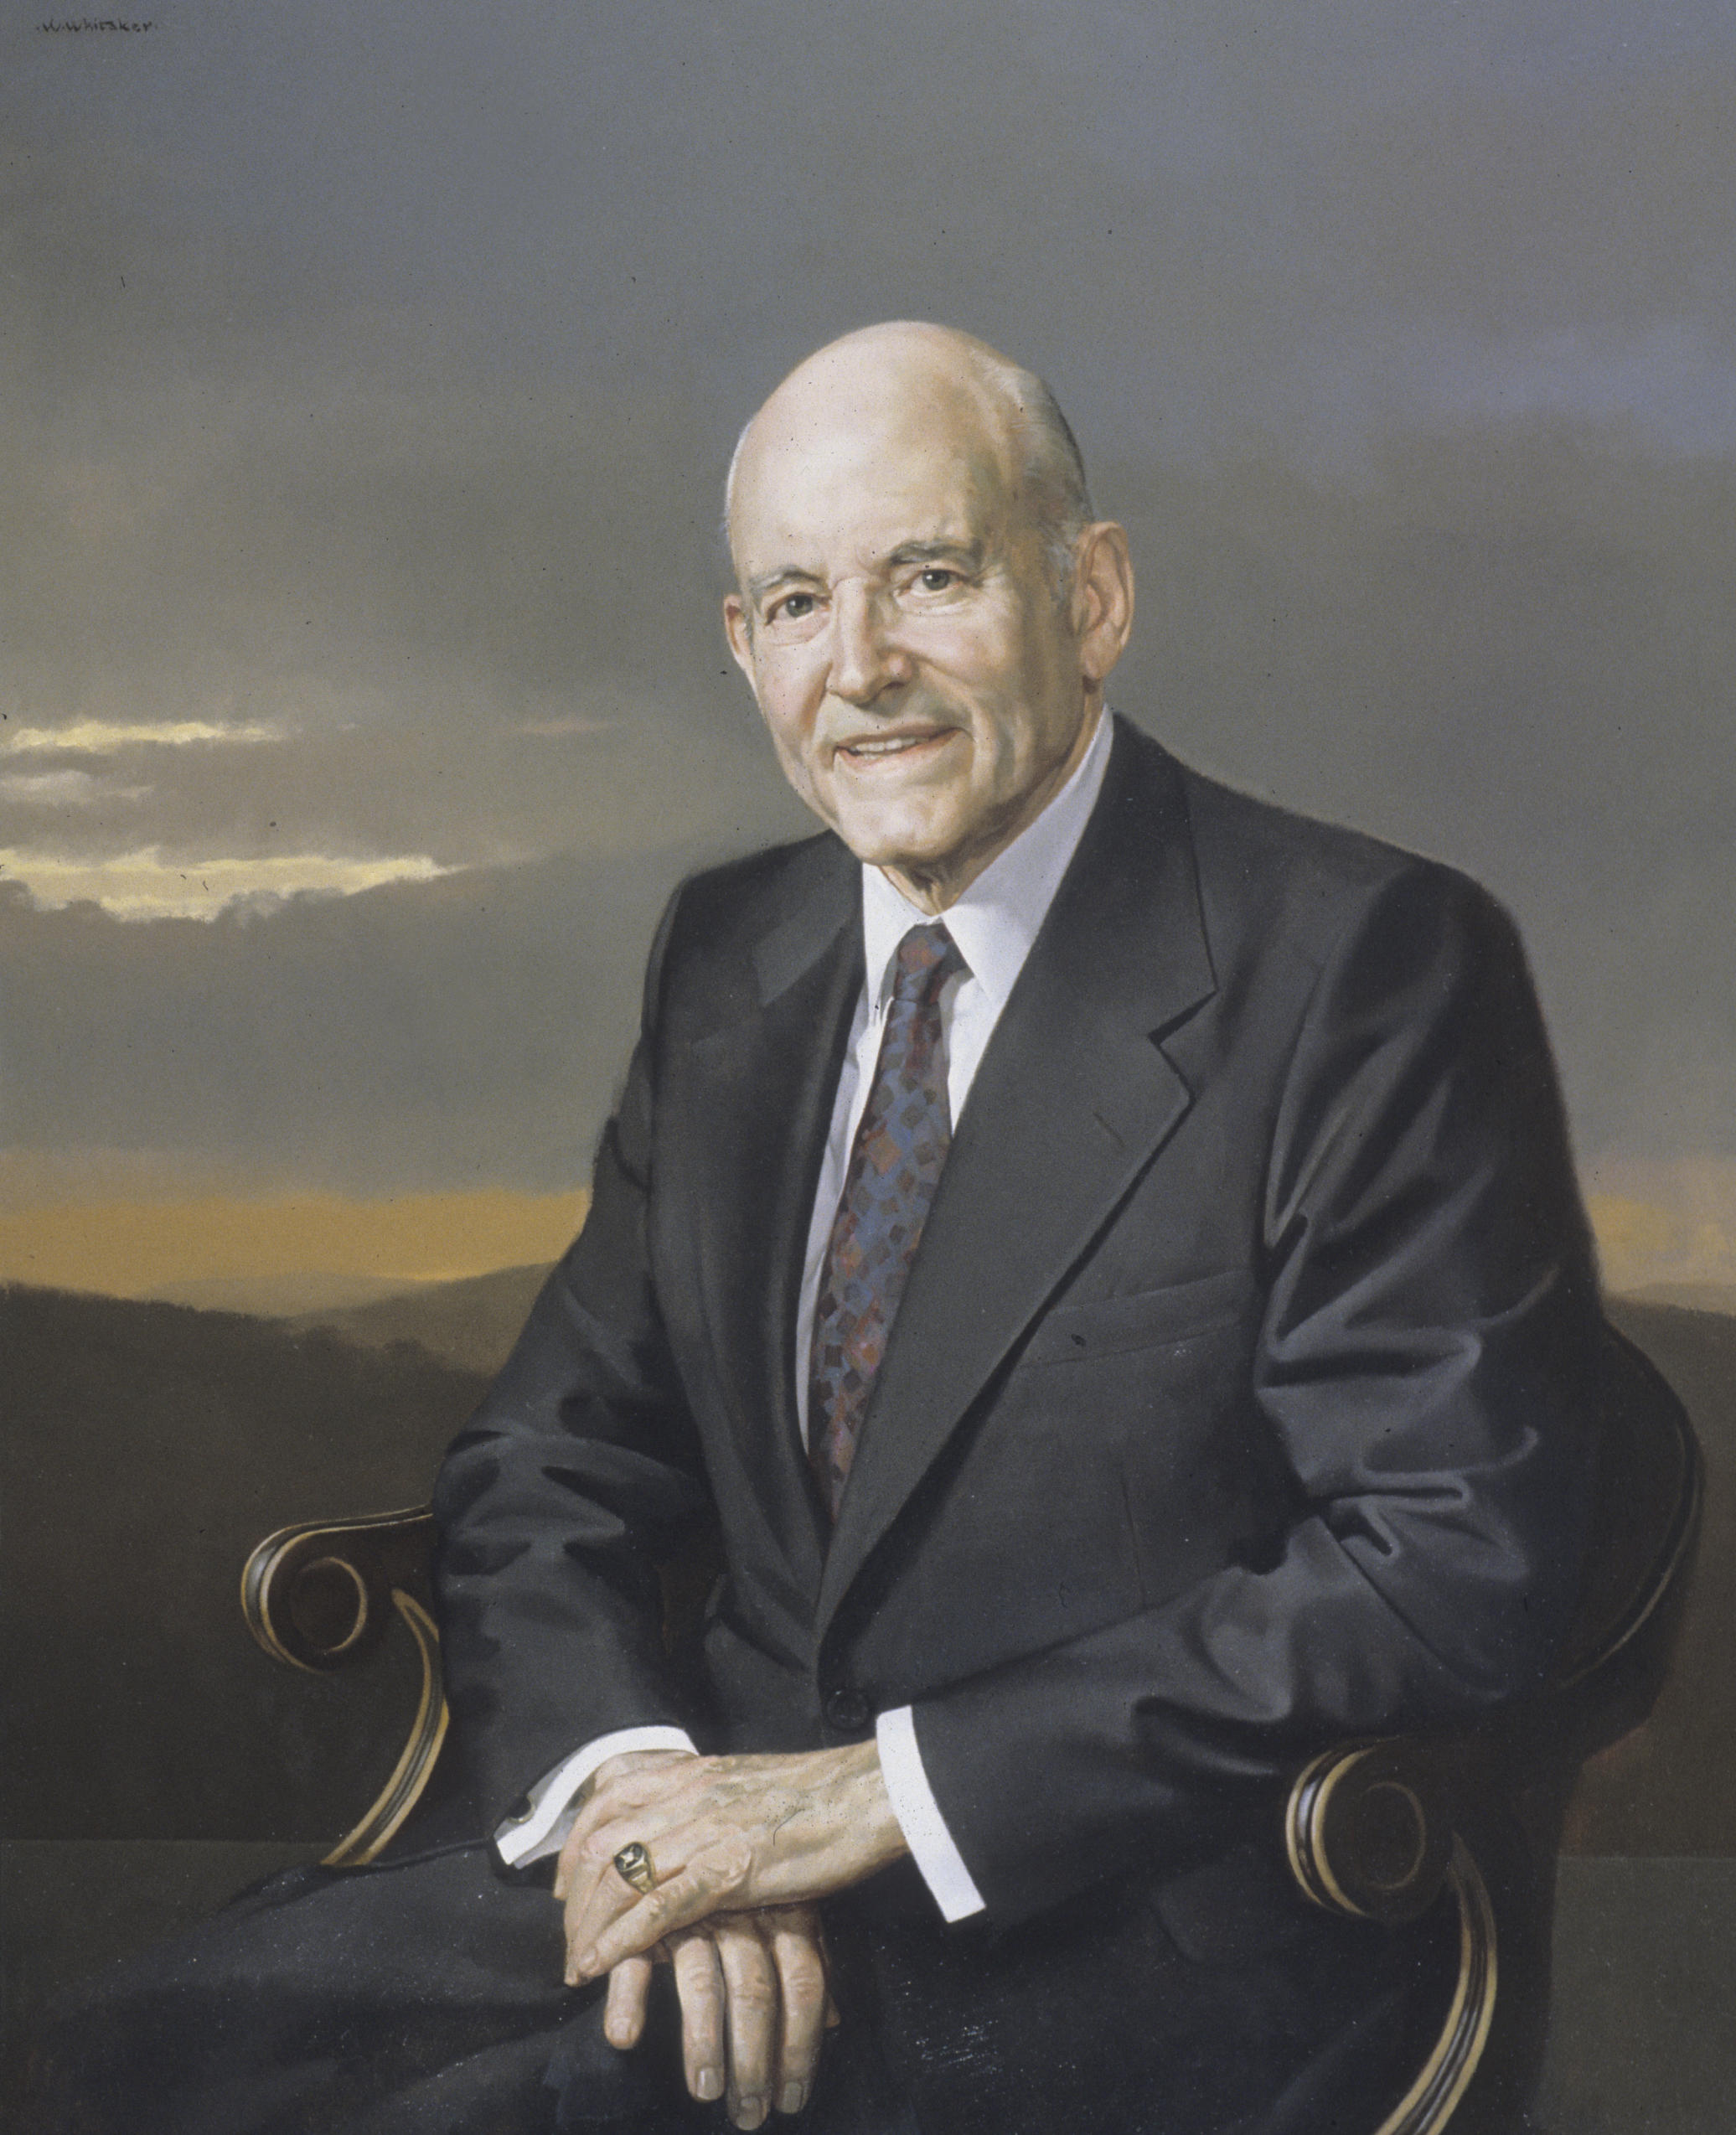 A portrait of Howard W. Hunter, who was the 14th President of the Church from 1994 to 1995; painted by William F. Whitaker Jr.